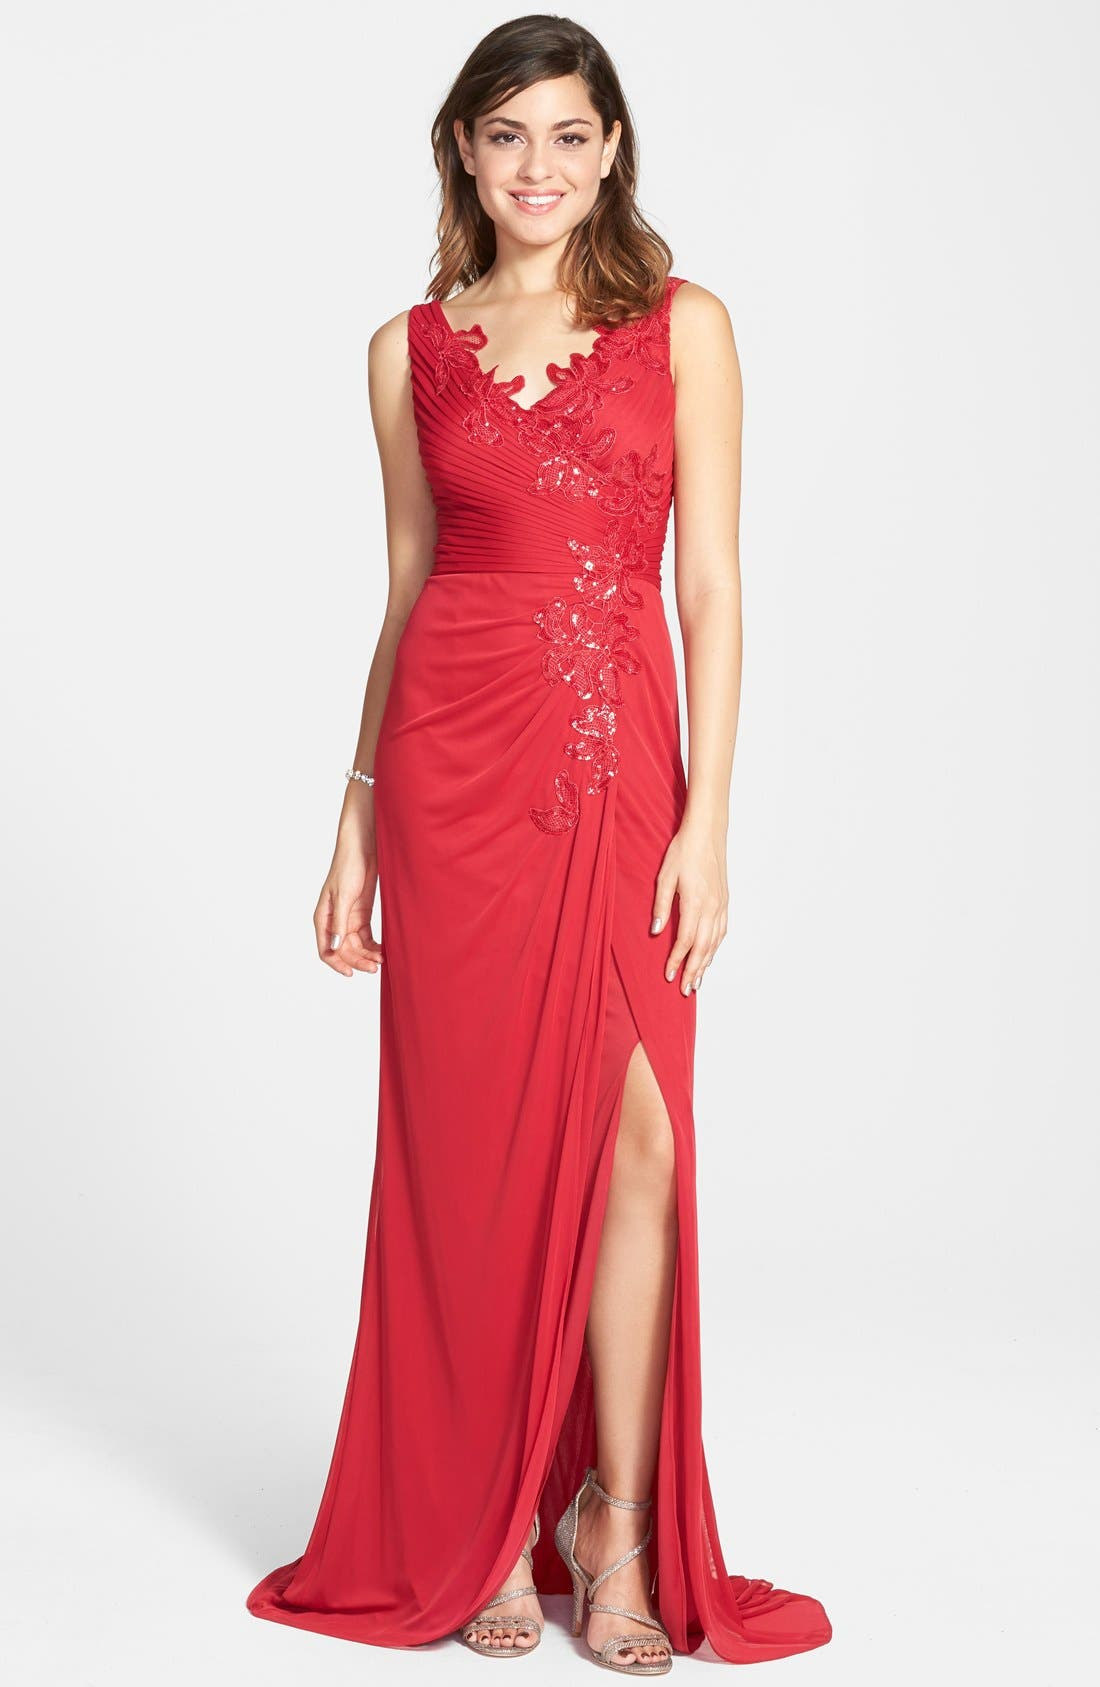 Alternate Image 1 Selected - Adrianna Papell Sequin Tulle Faux Wrap Gown